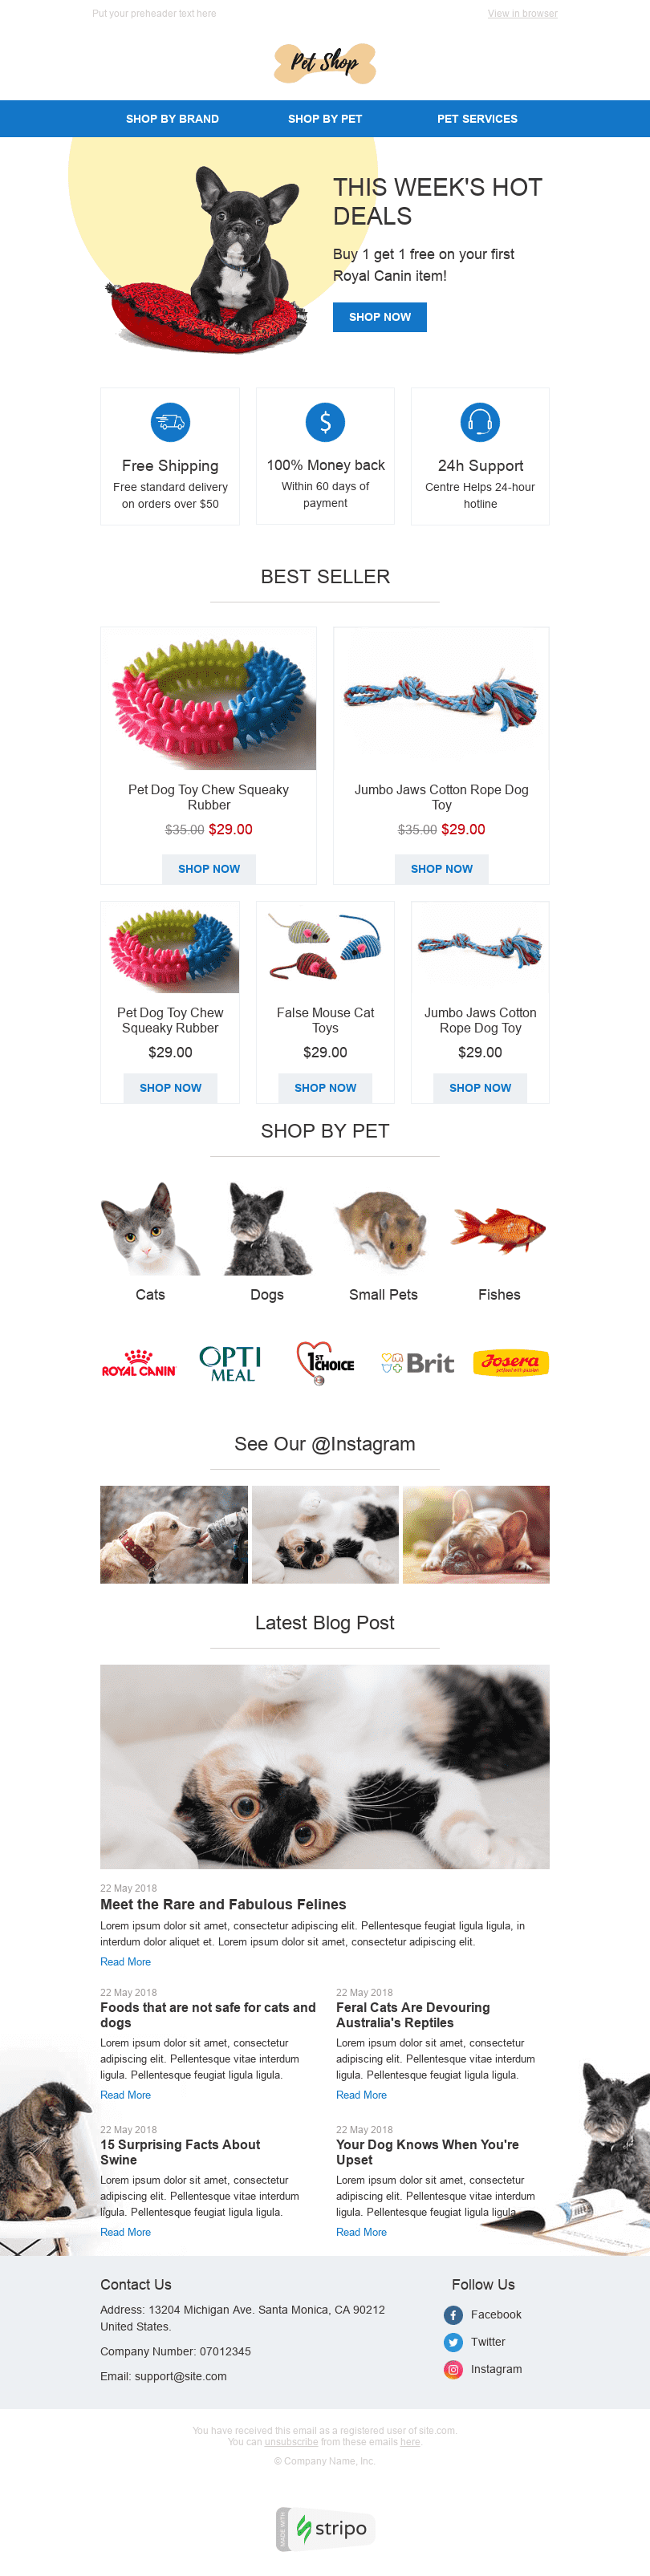 Promo Email Template «Favorite toys» for Pets industry desktop view